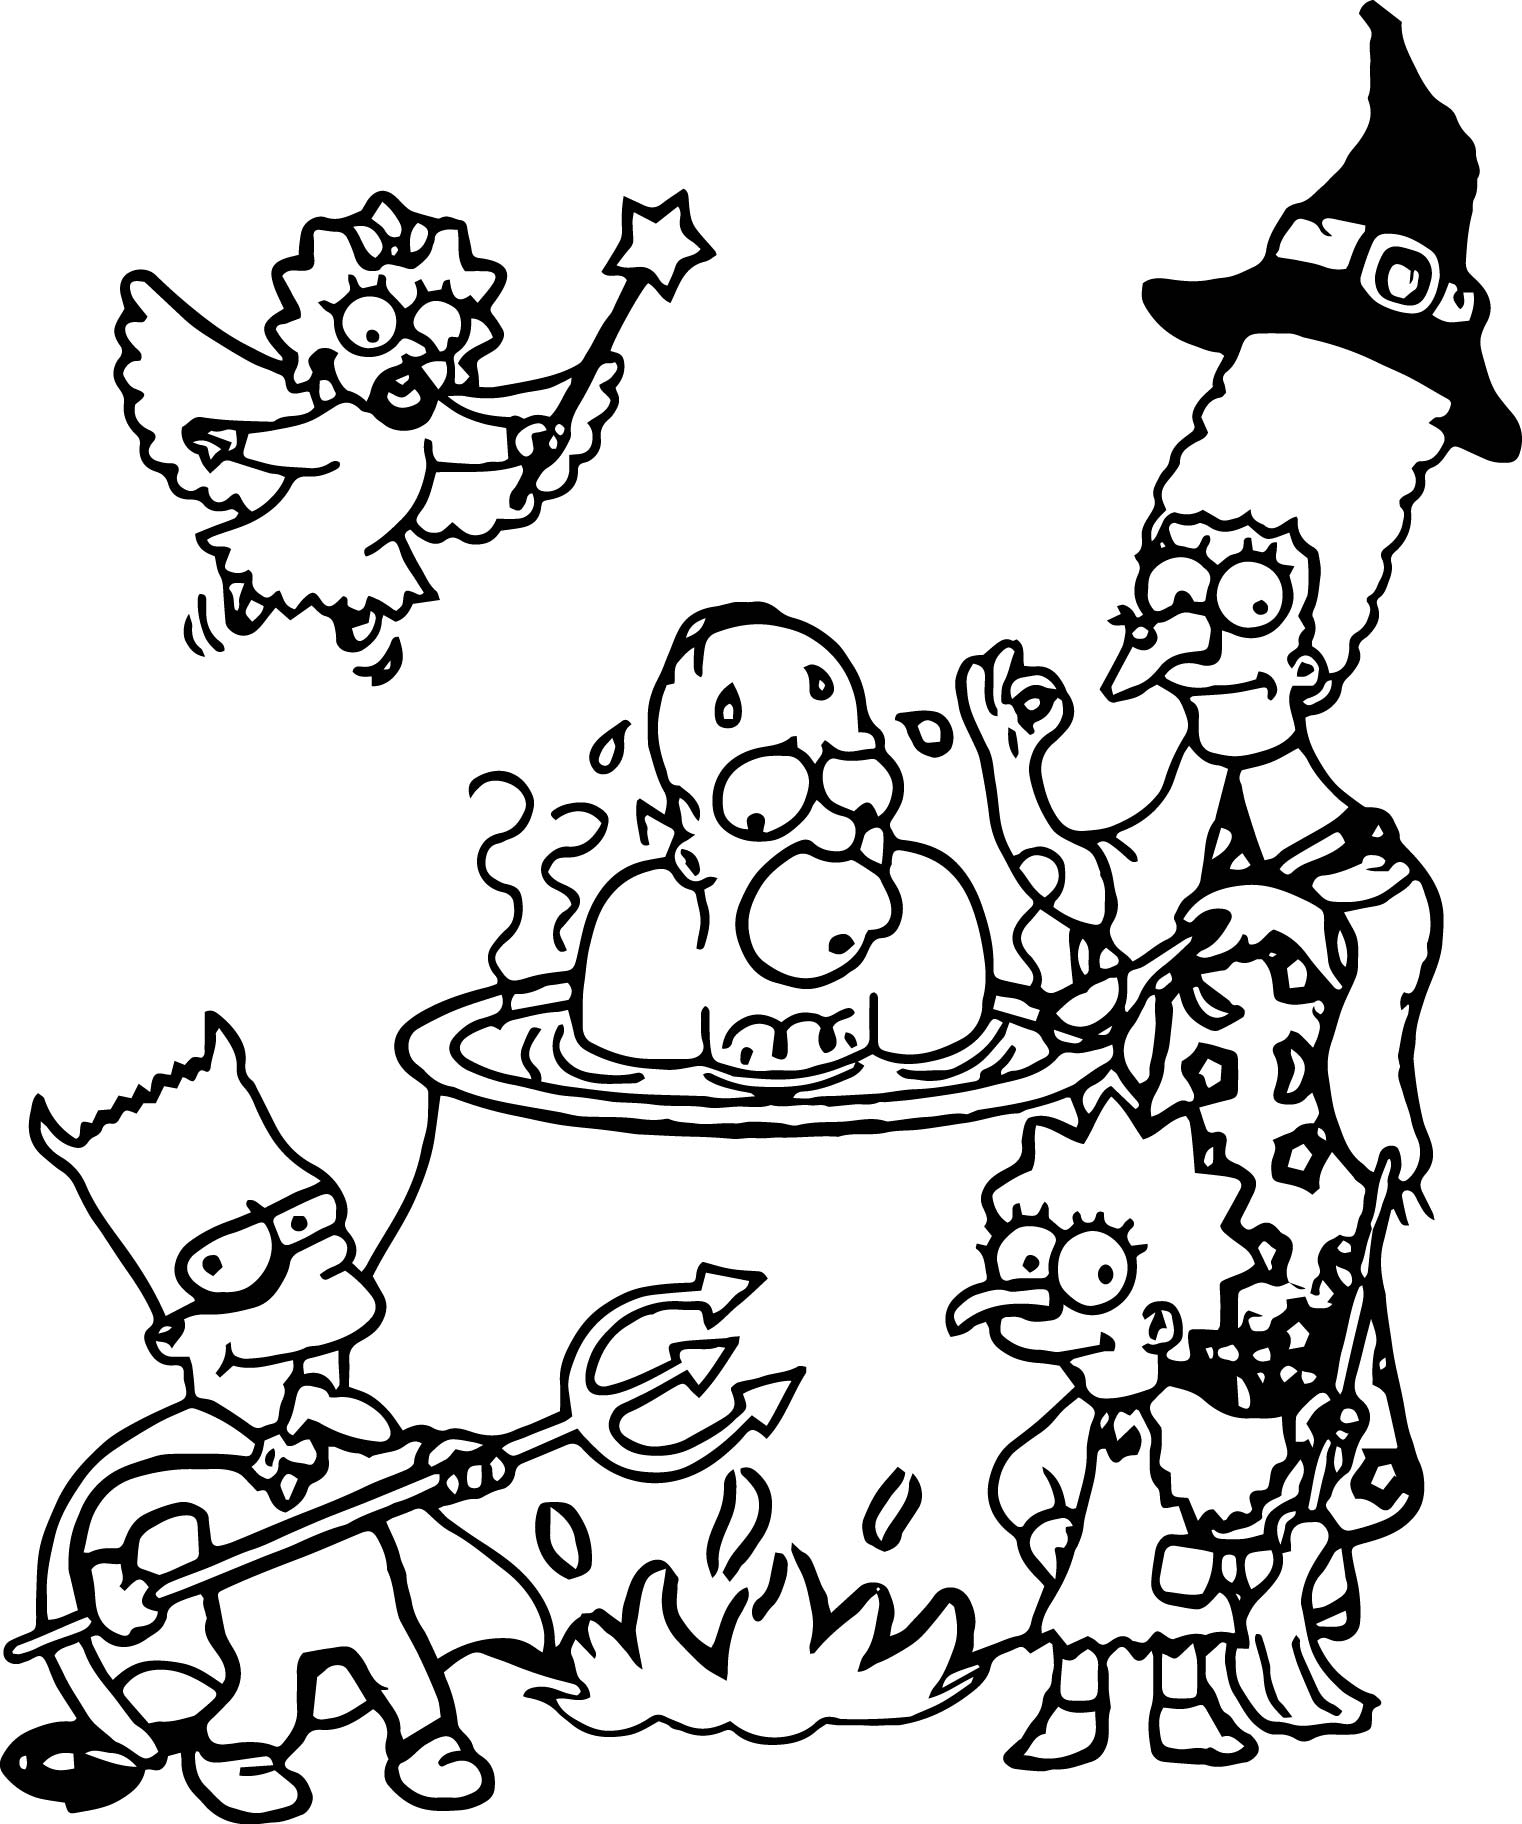 1522x1824 Key Art The Simpsons Coloring Pages Wecoloringpage Magnificent